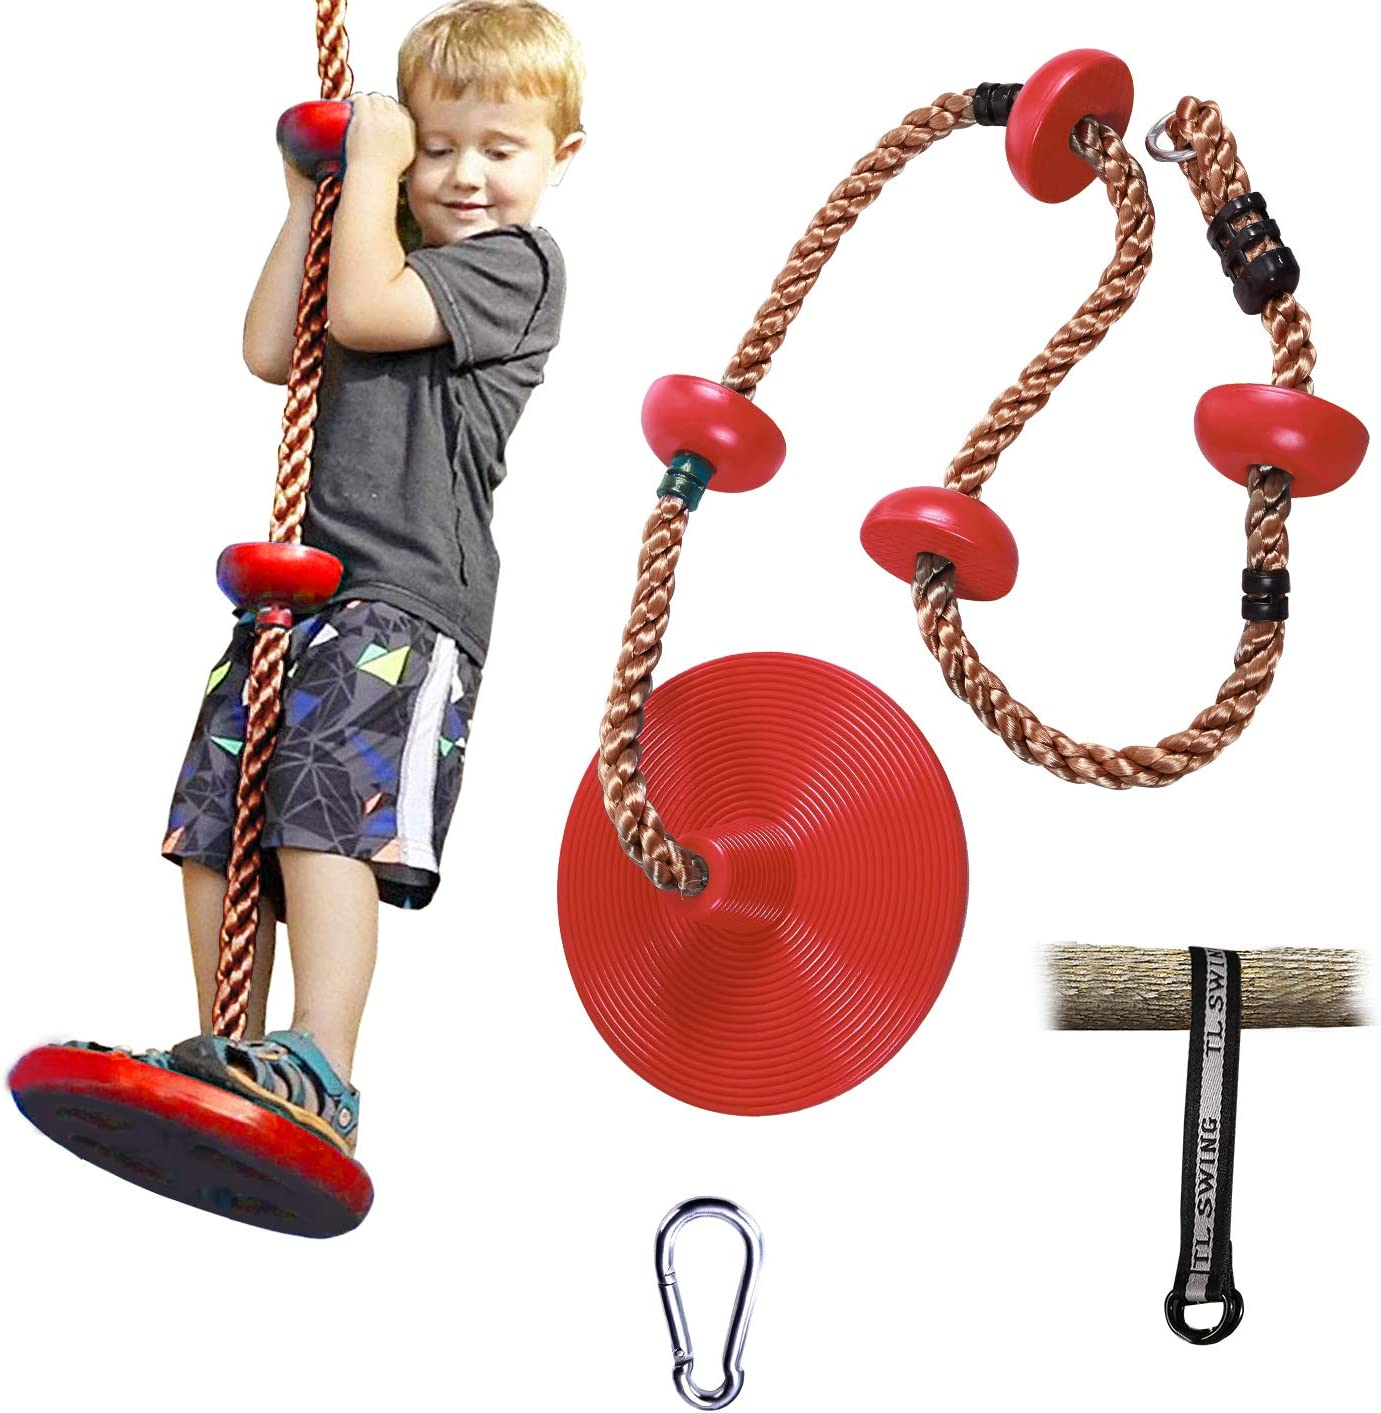 RedSwing Tree Climbing Rope with Platform and Disc Swing Seat, Children Tree Disc Swing Safety for Outside Inside, Bonus Hanging Strap & Carabiner, Red